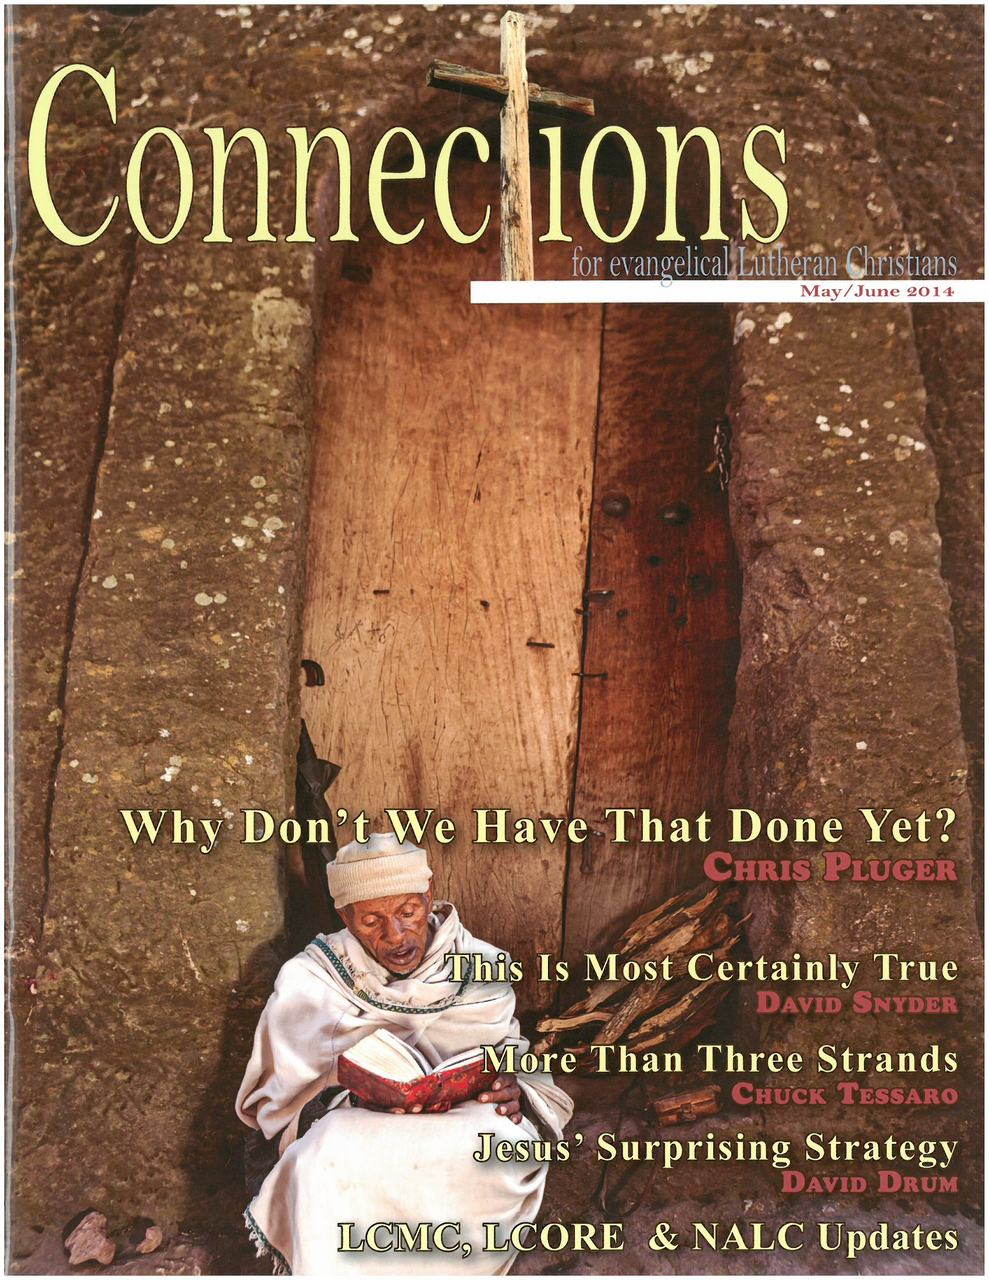 Connections Back Issue May/June '14 P-B143